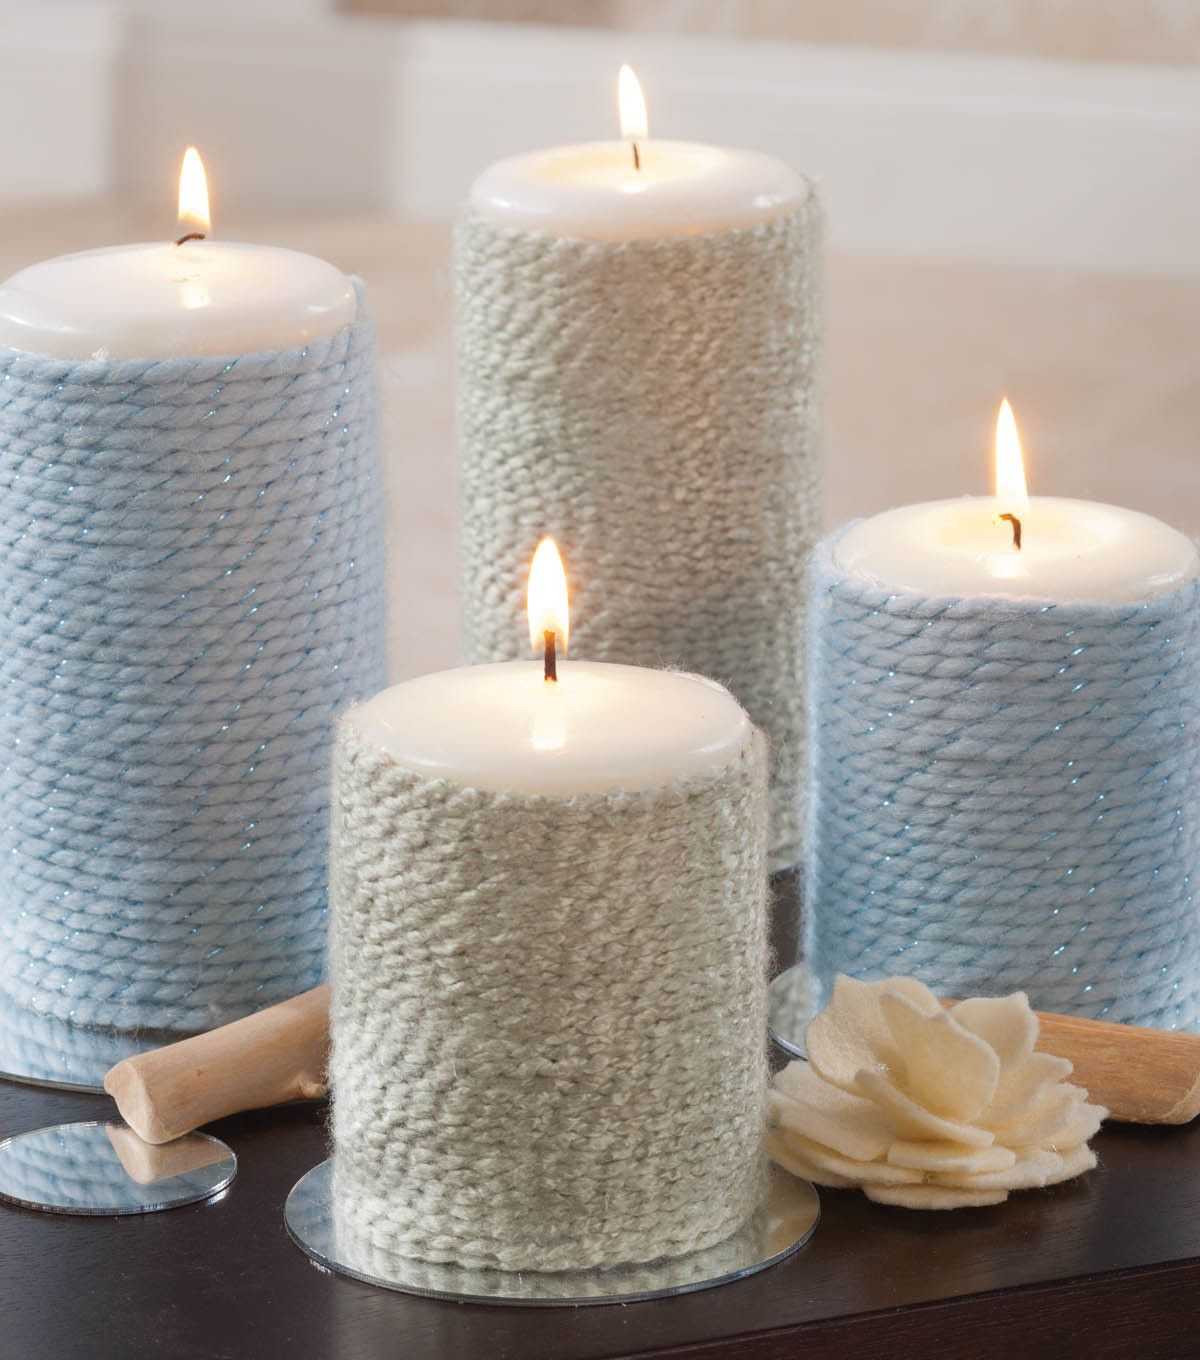 Pretty way to dress up plain candles with yarn for easy